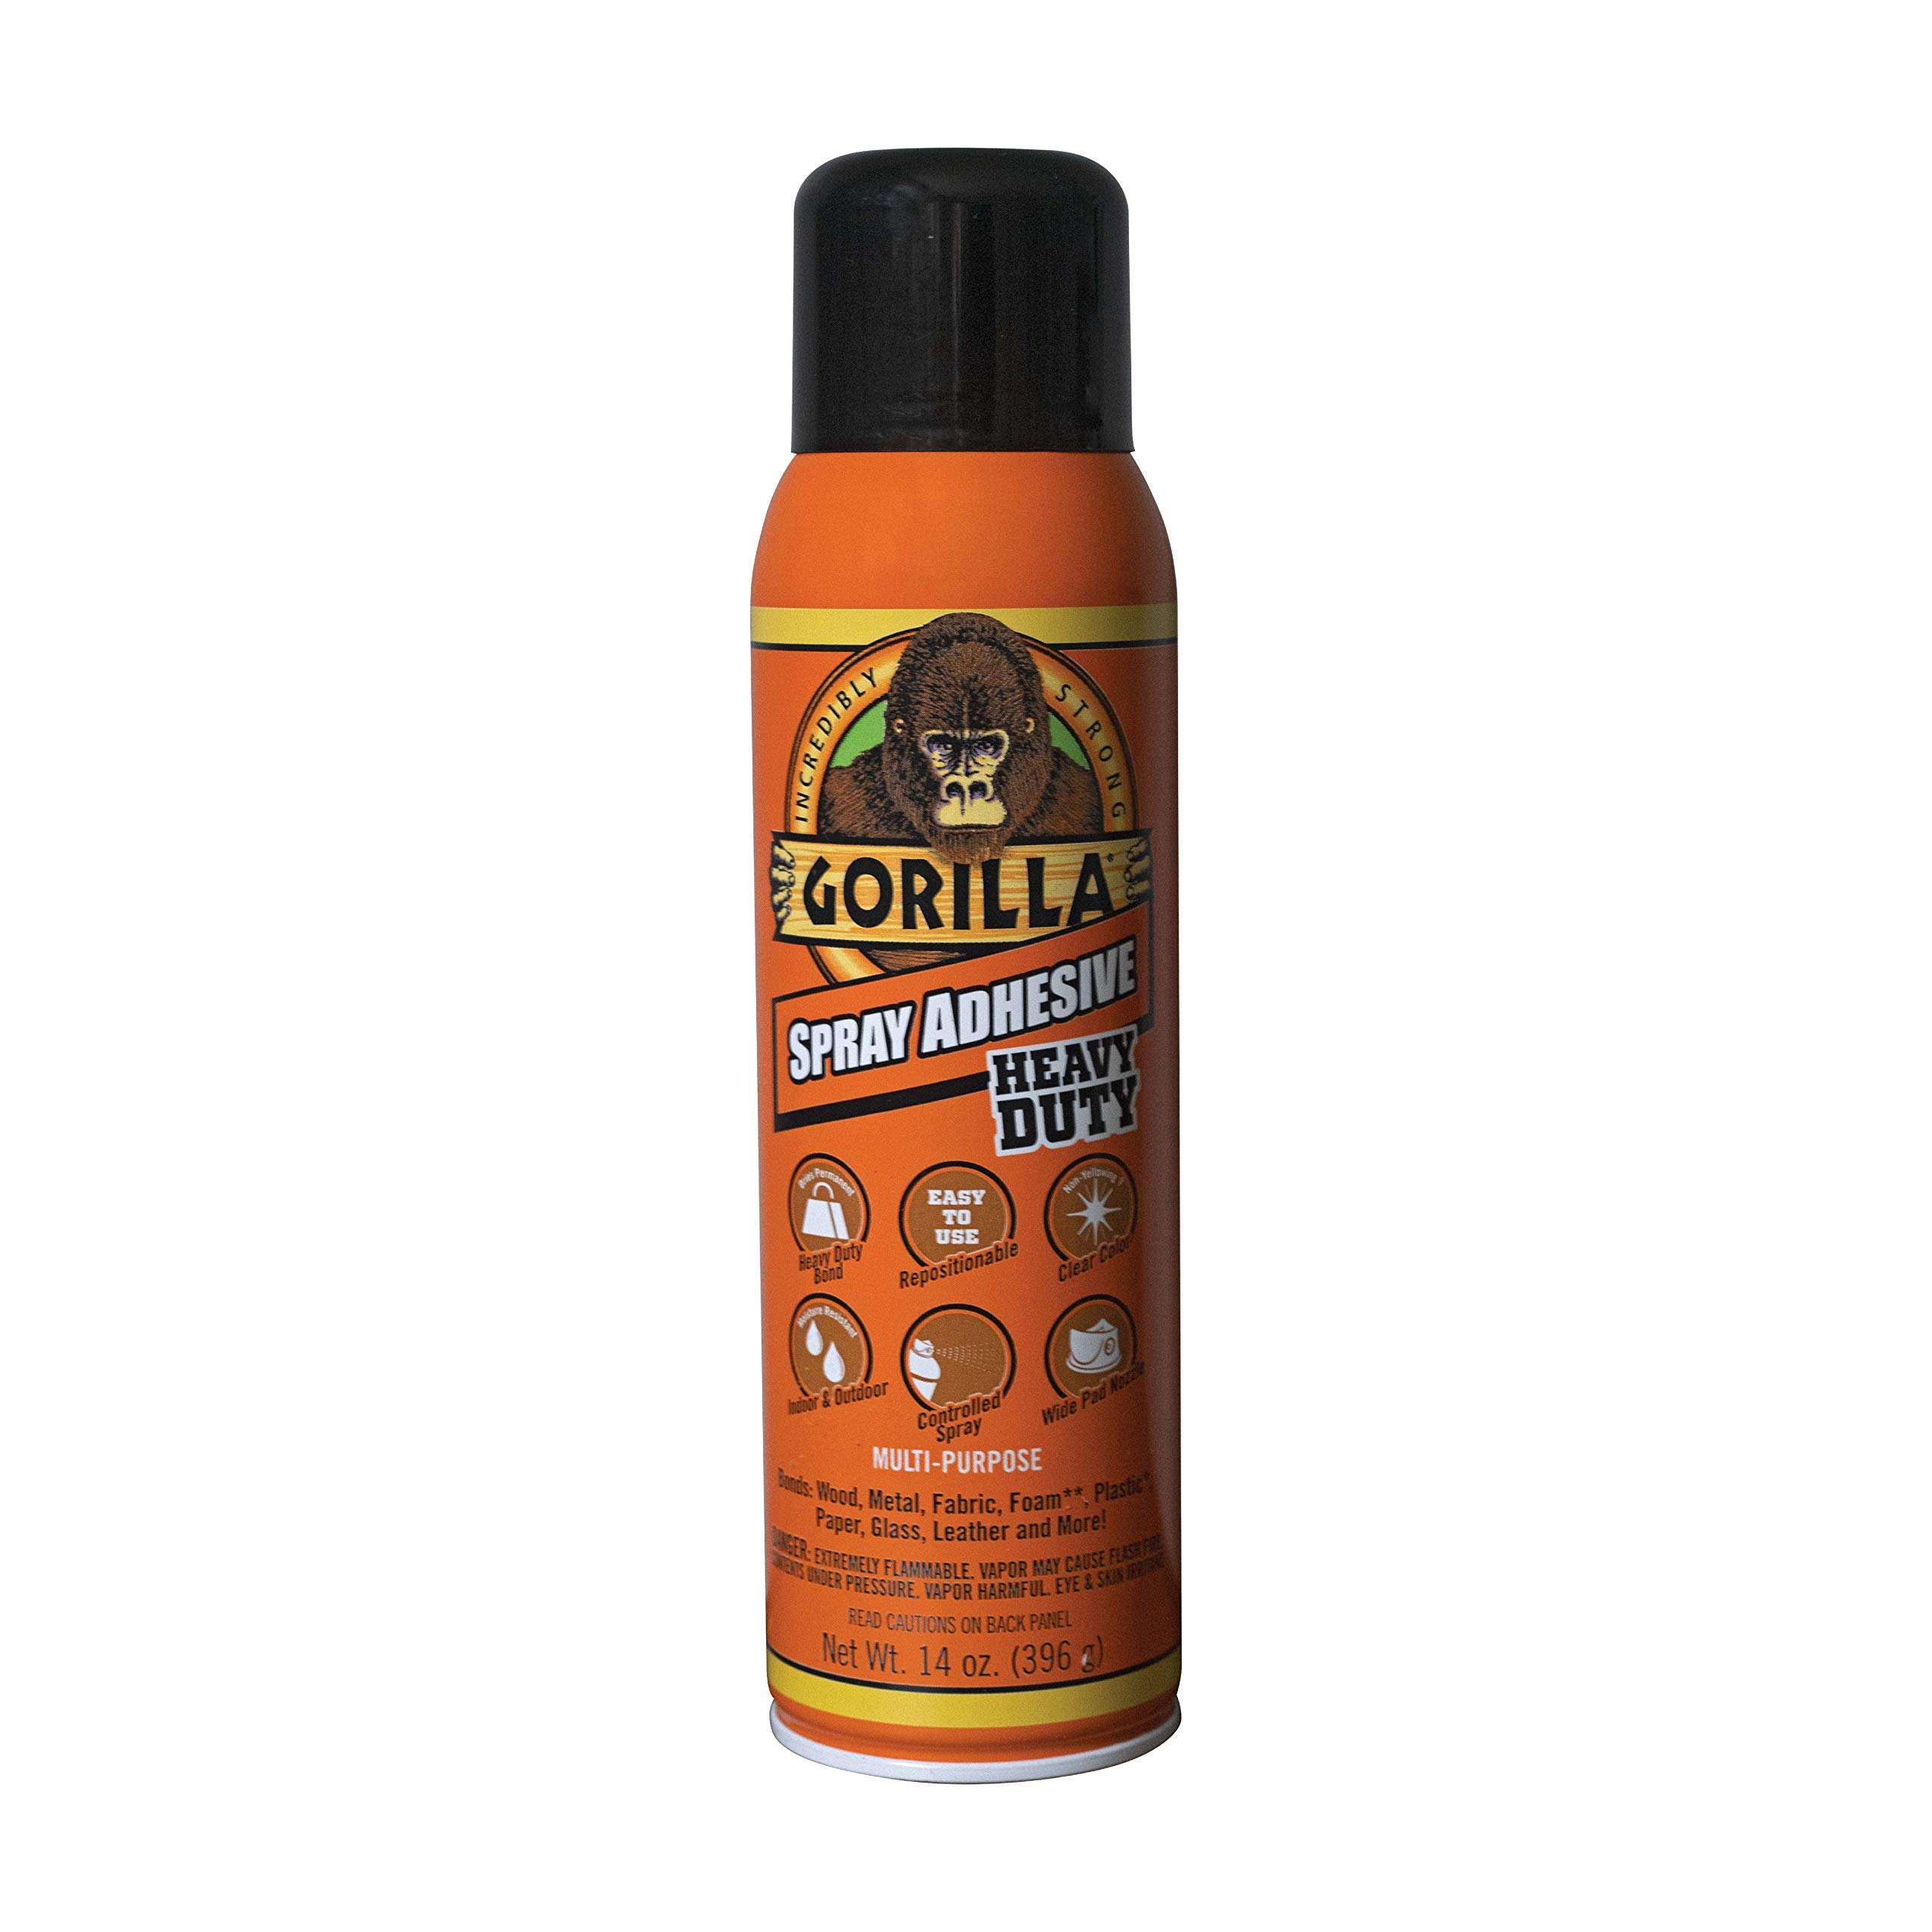 Gorilla 6301502 Spray Adhesive 14oz, 1-Pack, Clear